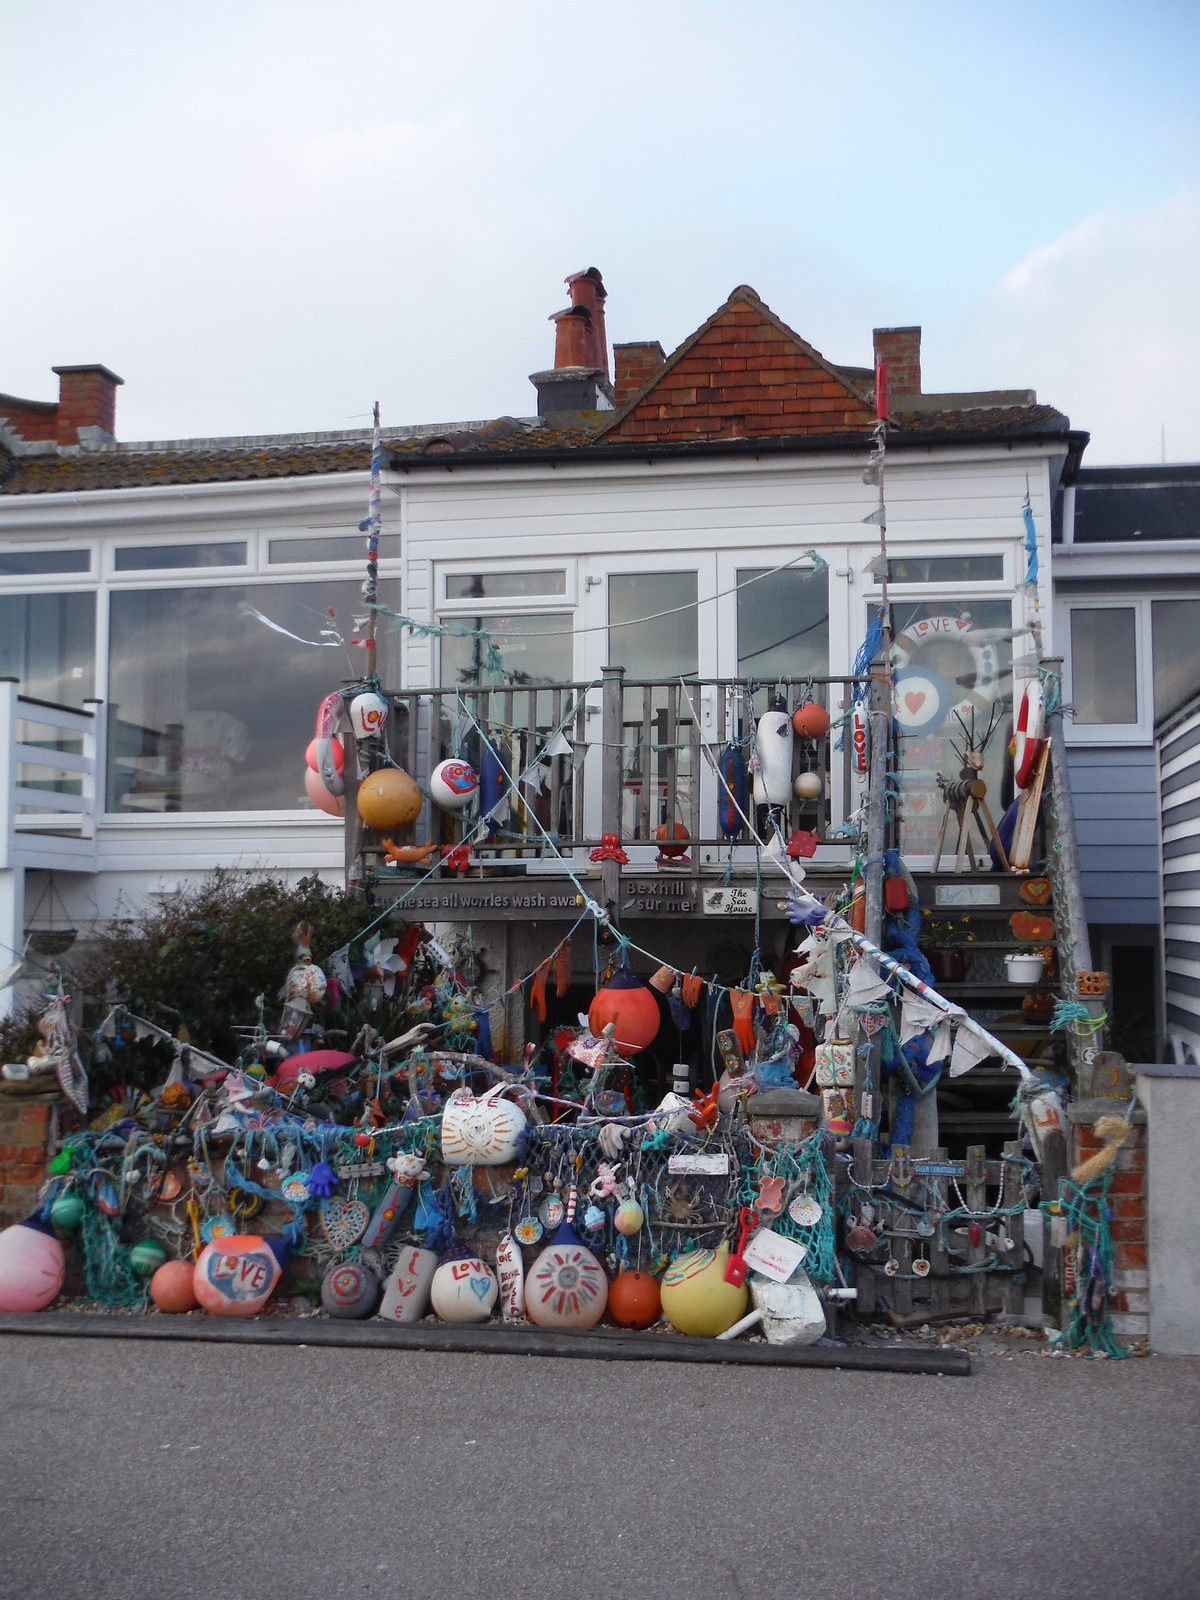 A Hoarder's House, Bexhill SWC Walk 66 - Eastbourne to Hastings via Bexhill